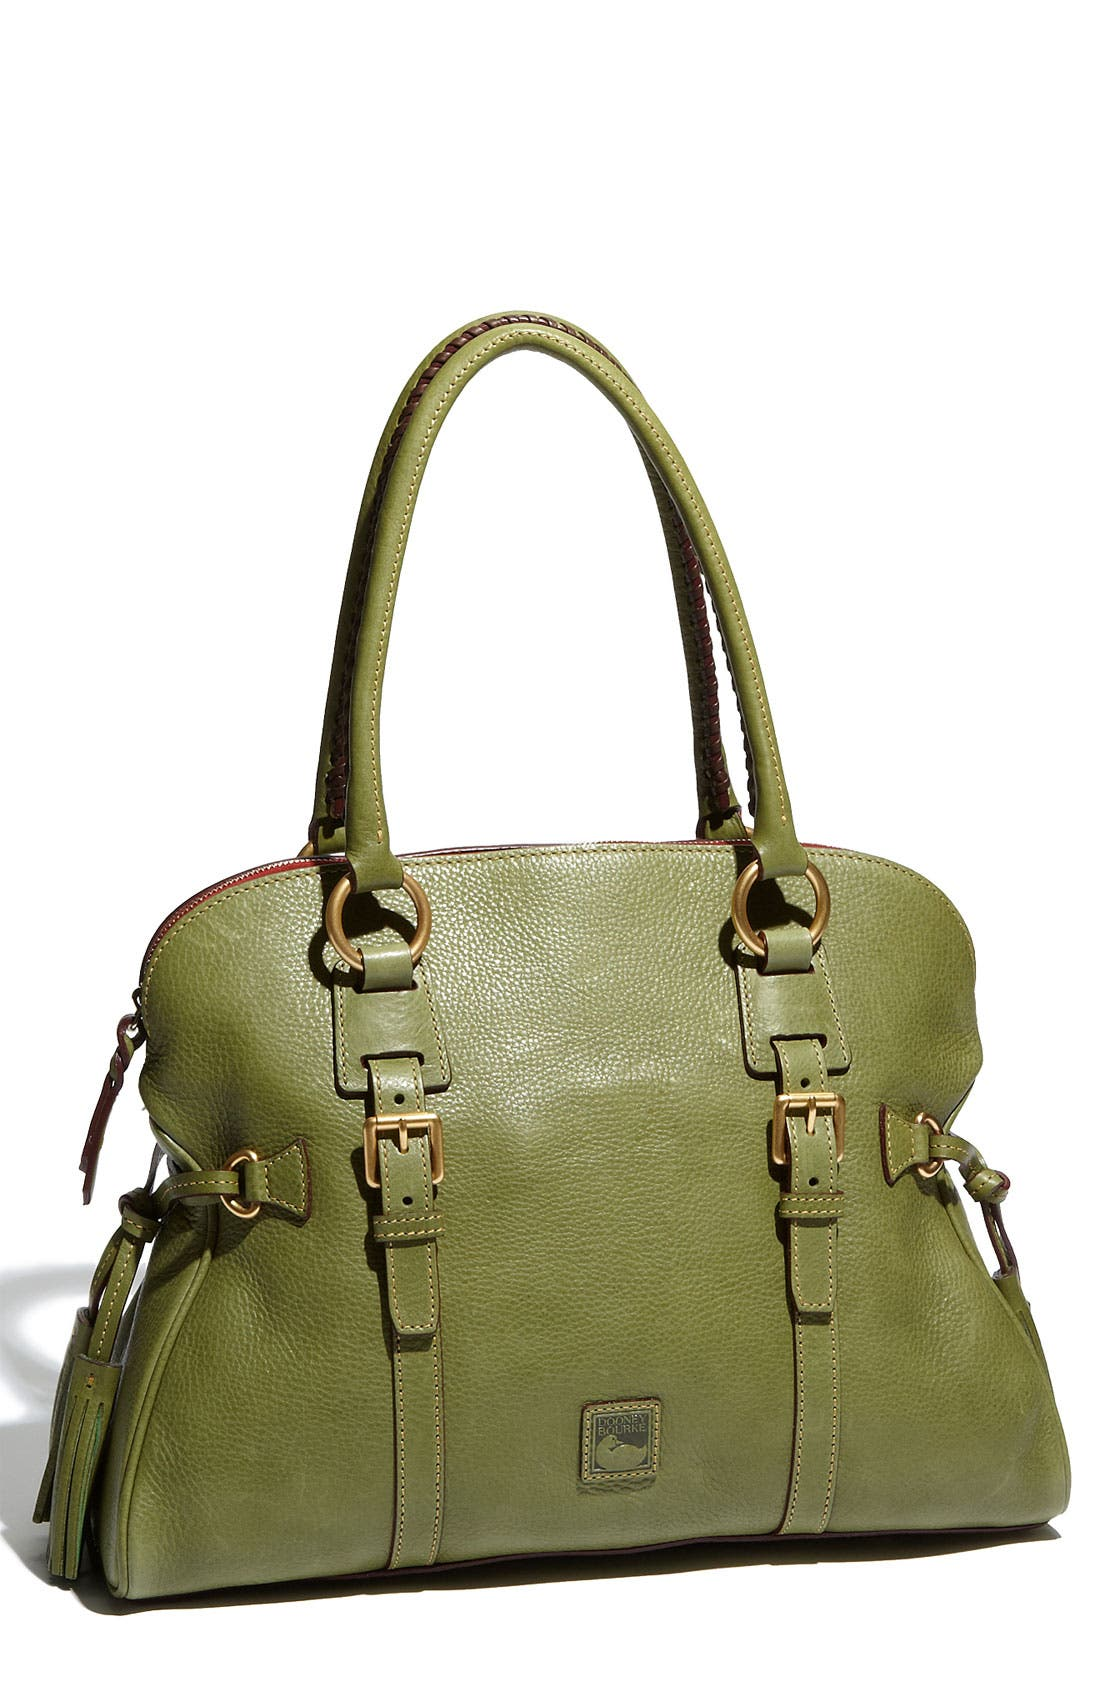 Alternate Image 1 Selected - Dooney & Bourke 'Florentine Collection' Domed Leather Buckle Satchel